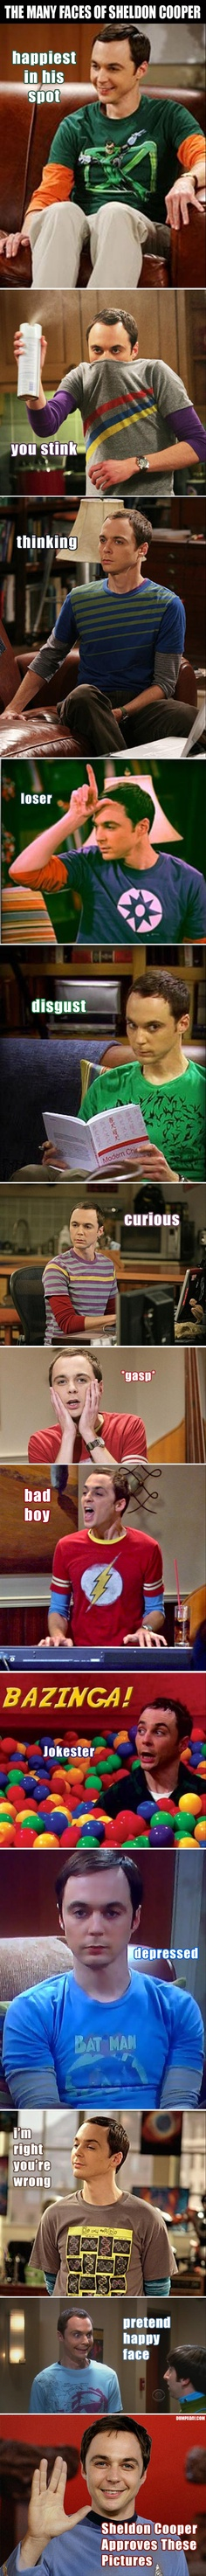 Many Faces of Sheldon Cooper - Big Bang Theory